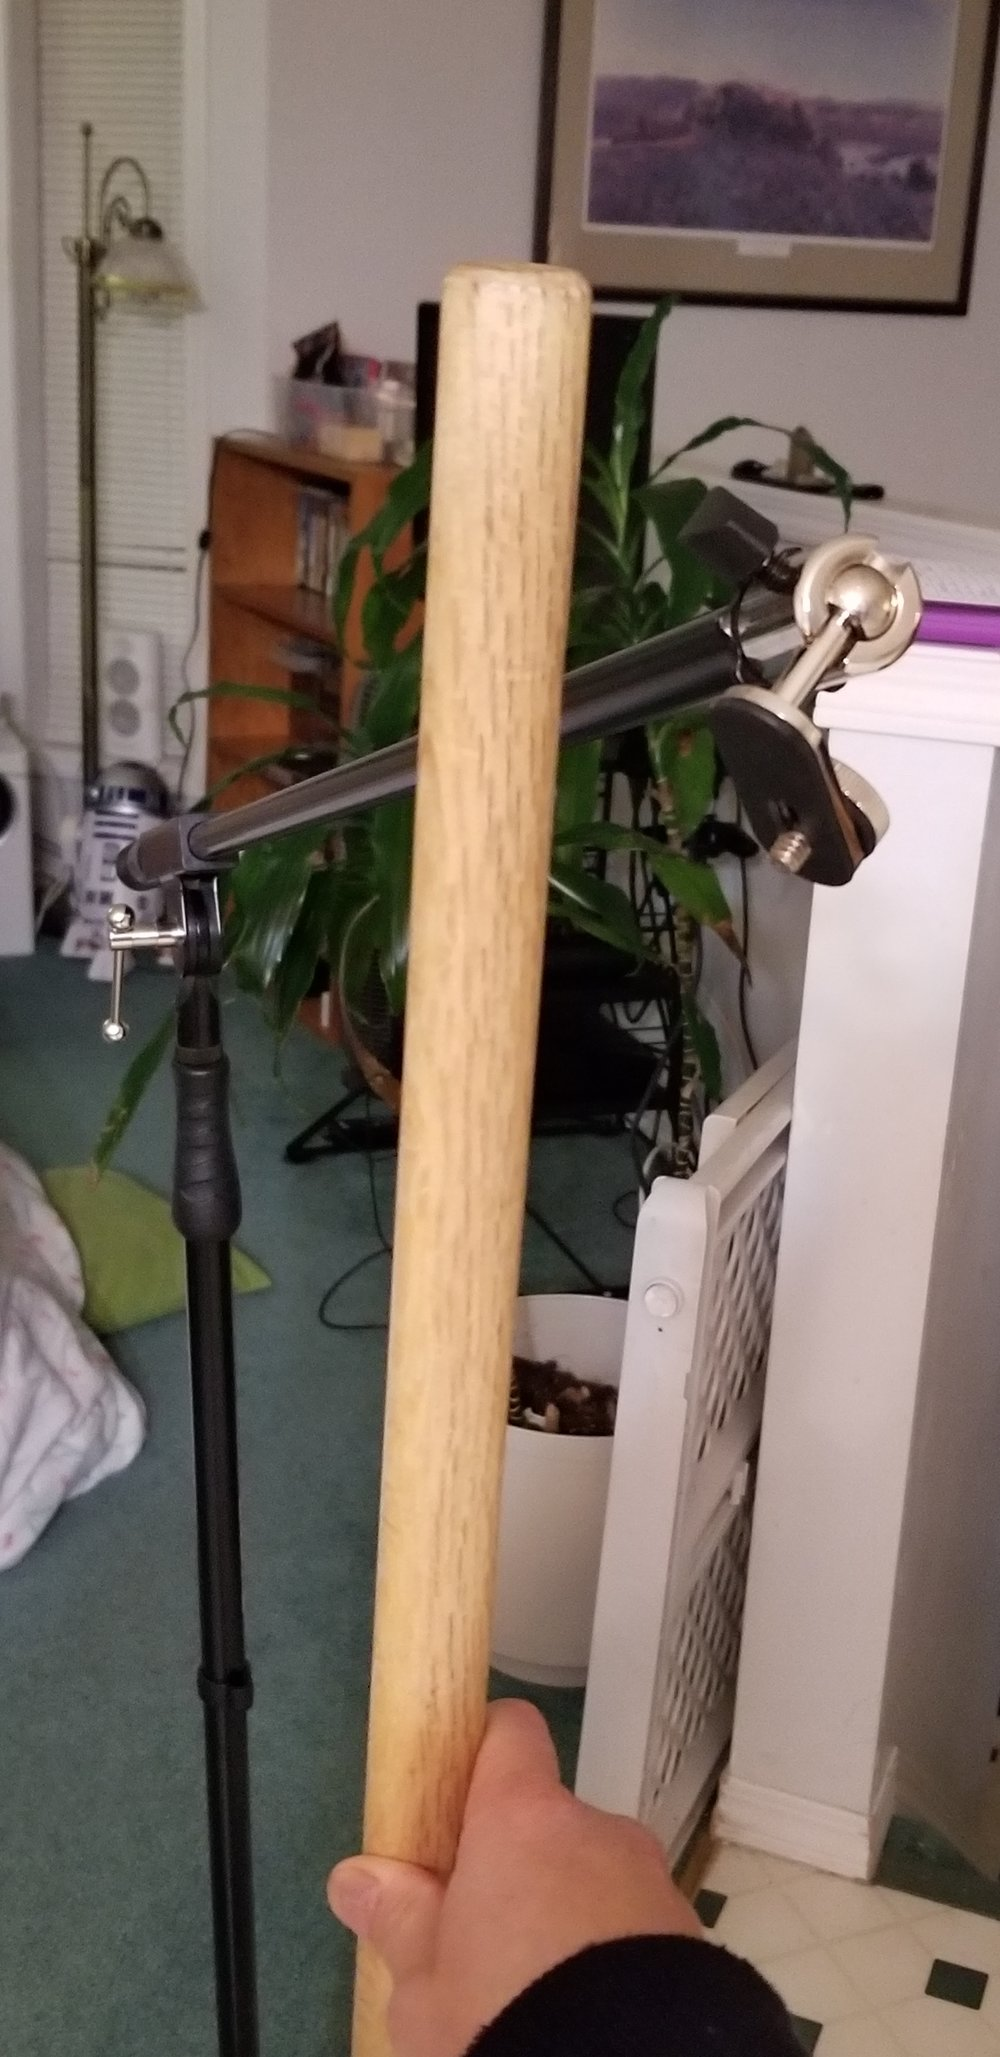 Mic Stand to the Rescue